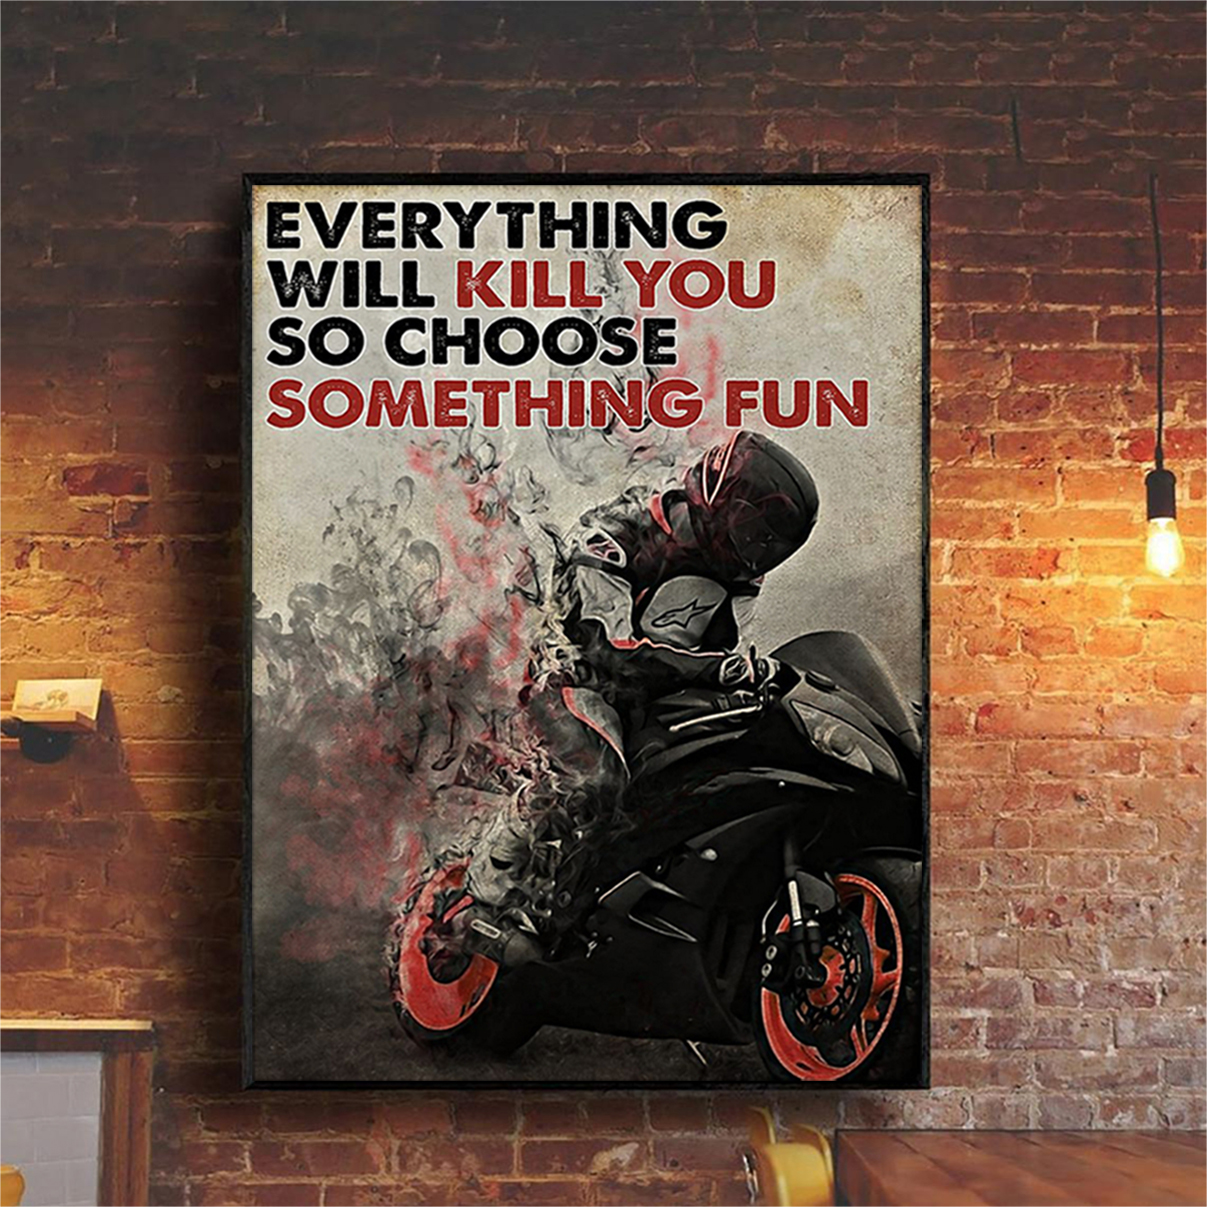 Racer everything will kill you so choose something fun poster A2